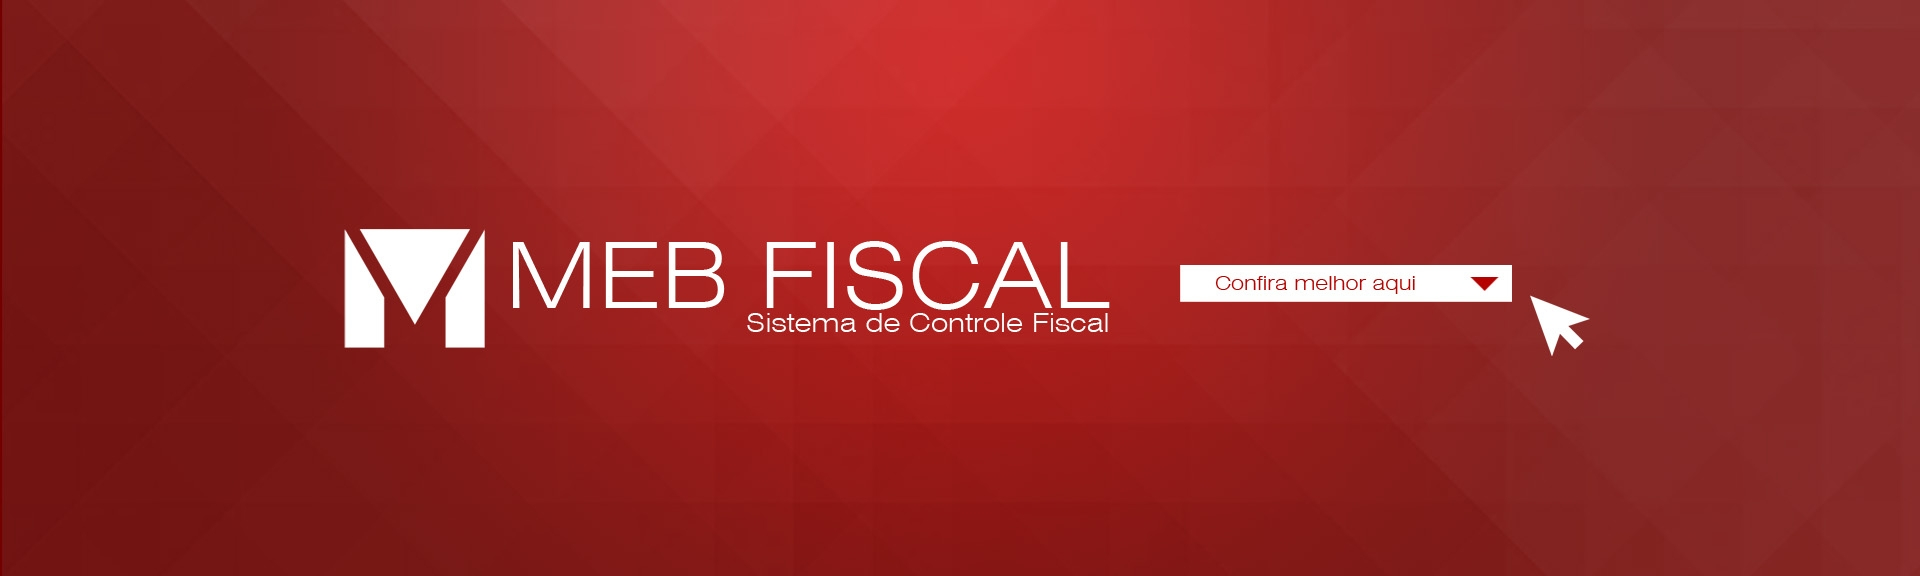 MEB FISCAL